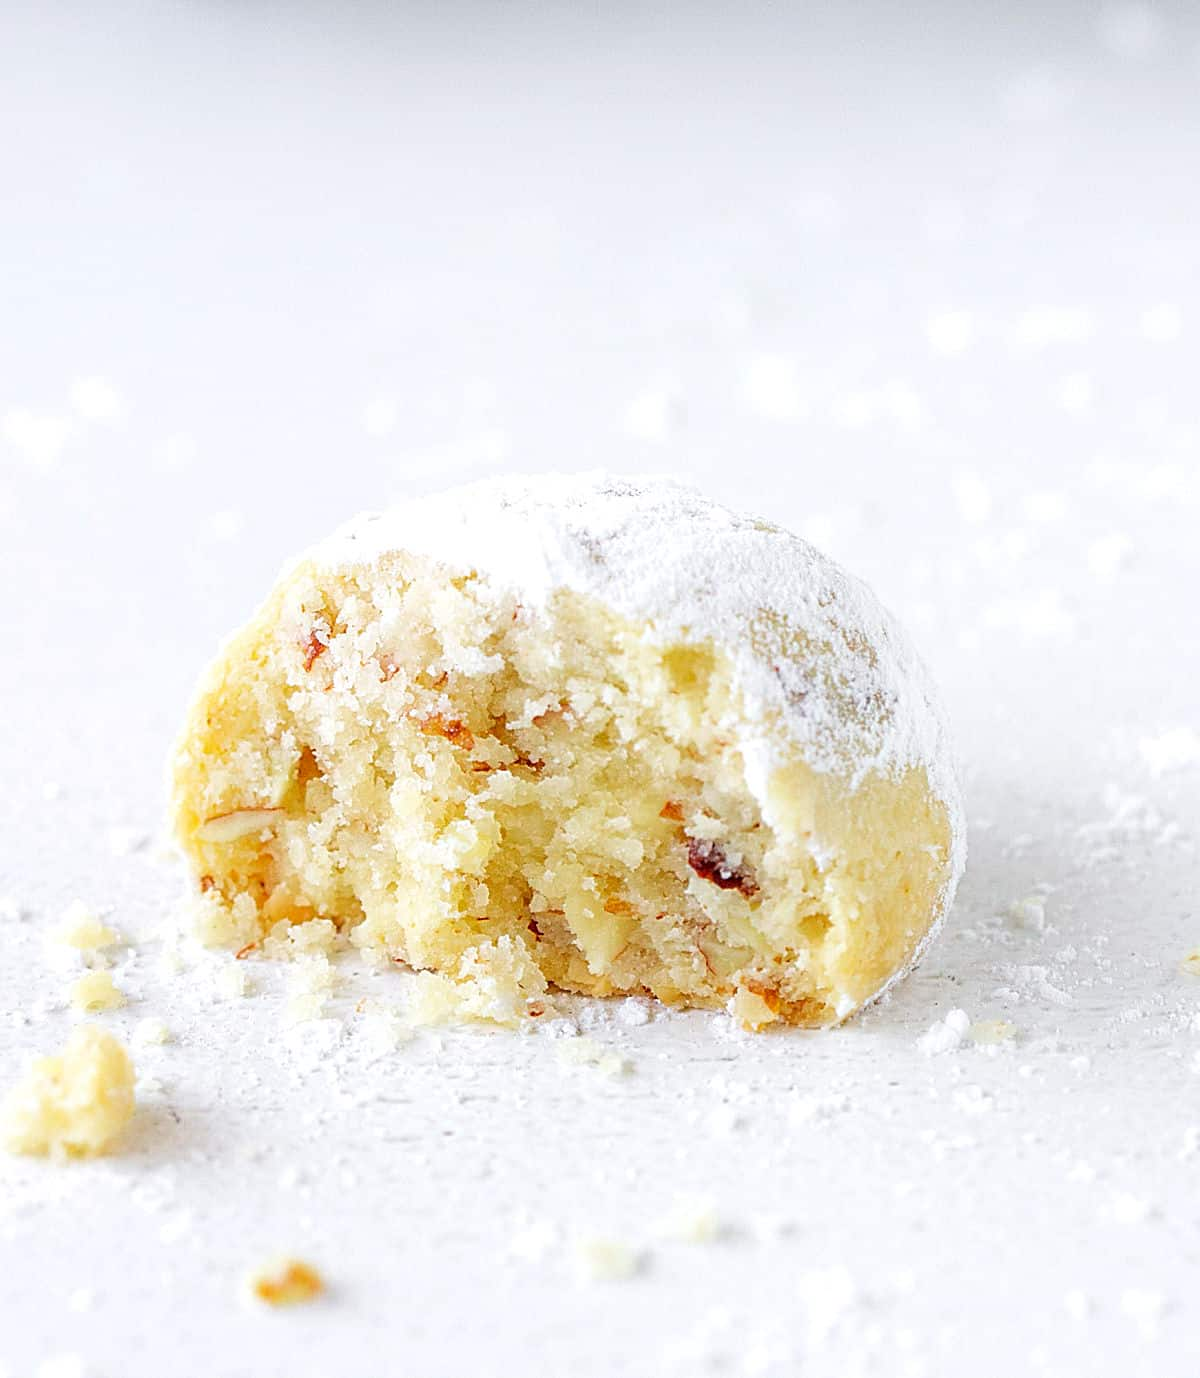 Single half of buttery cookie dusted with powdered sugar on a white surface, crumbs around